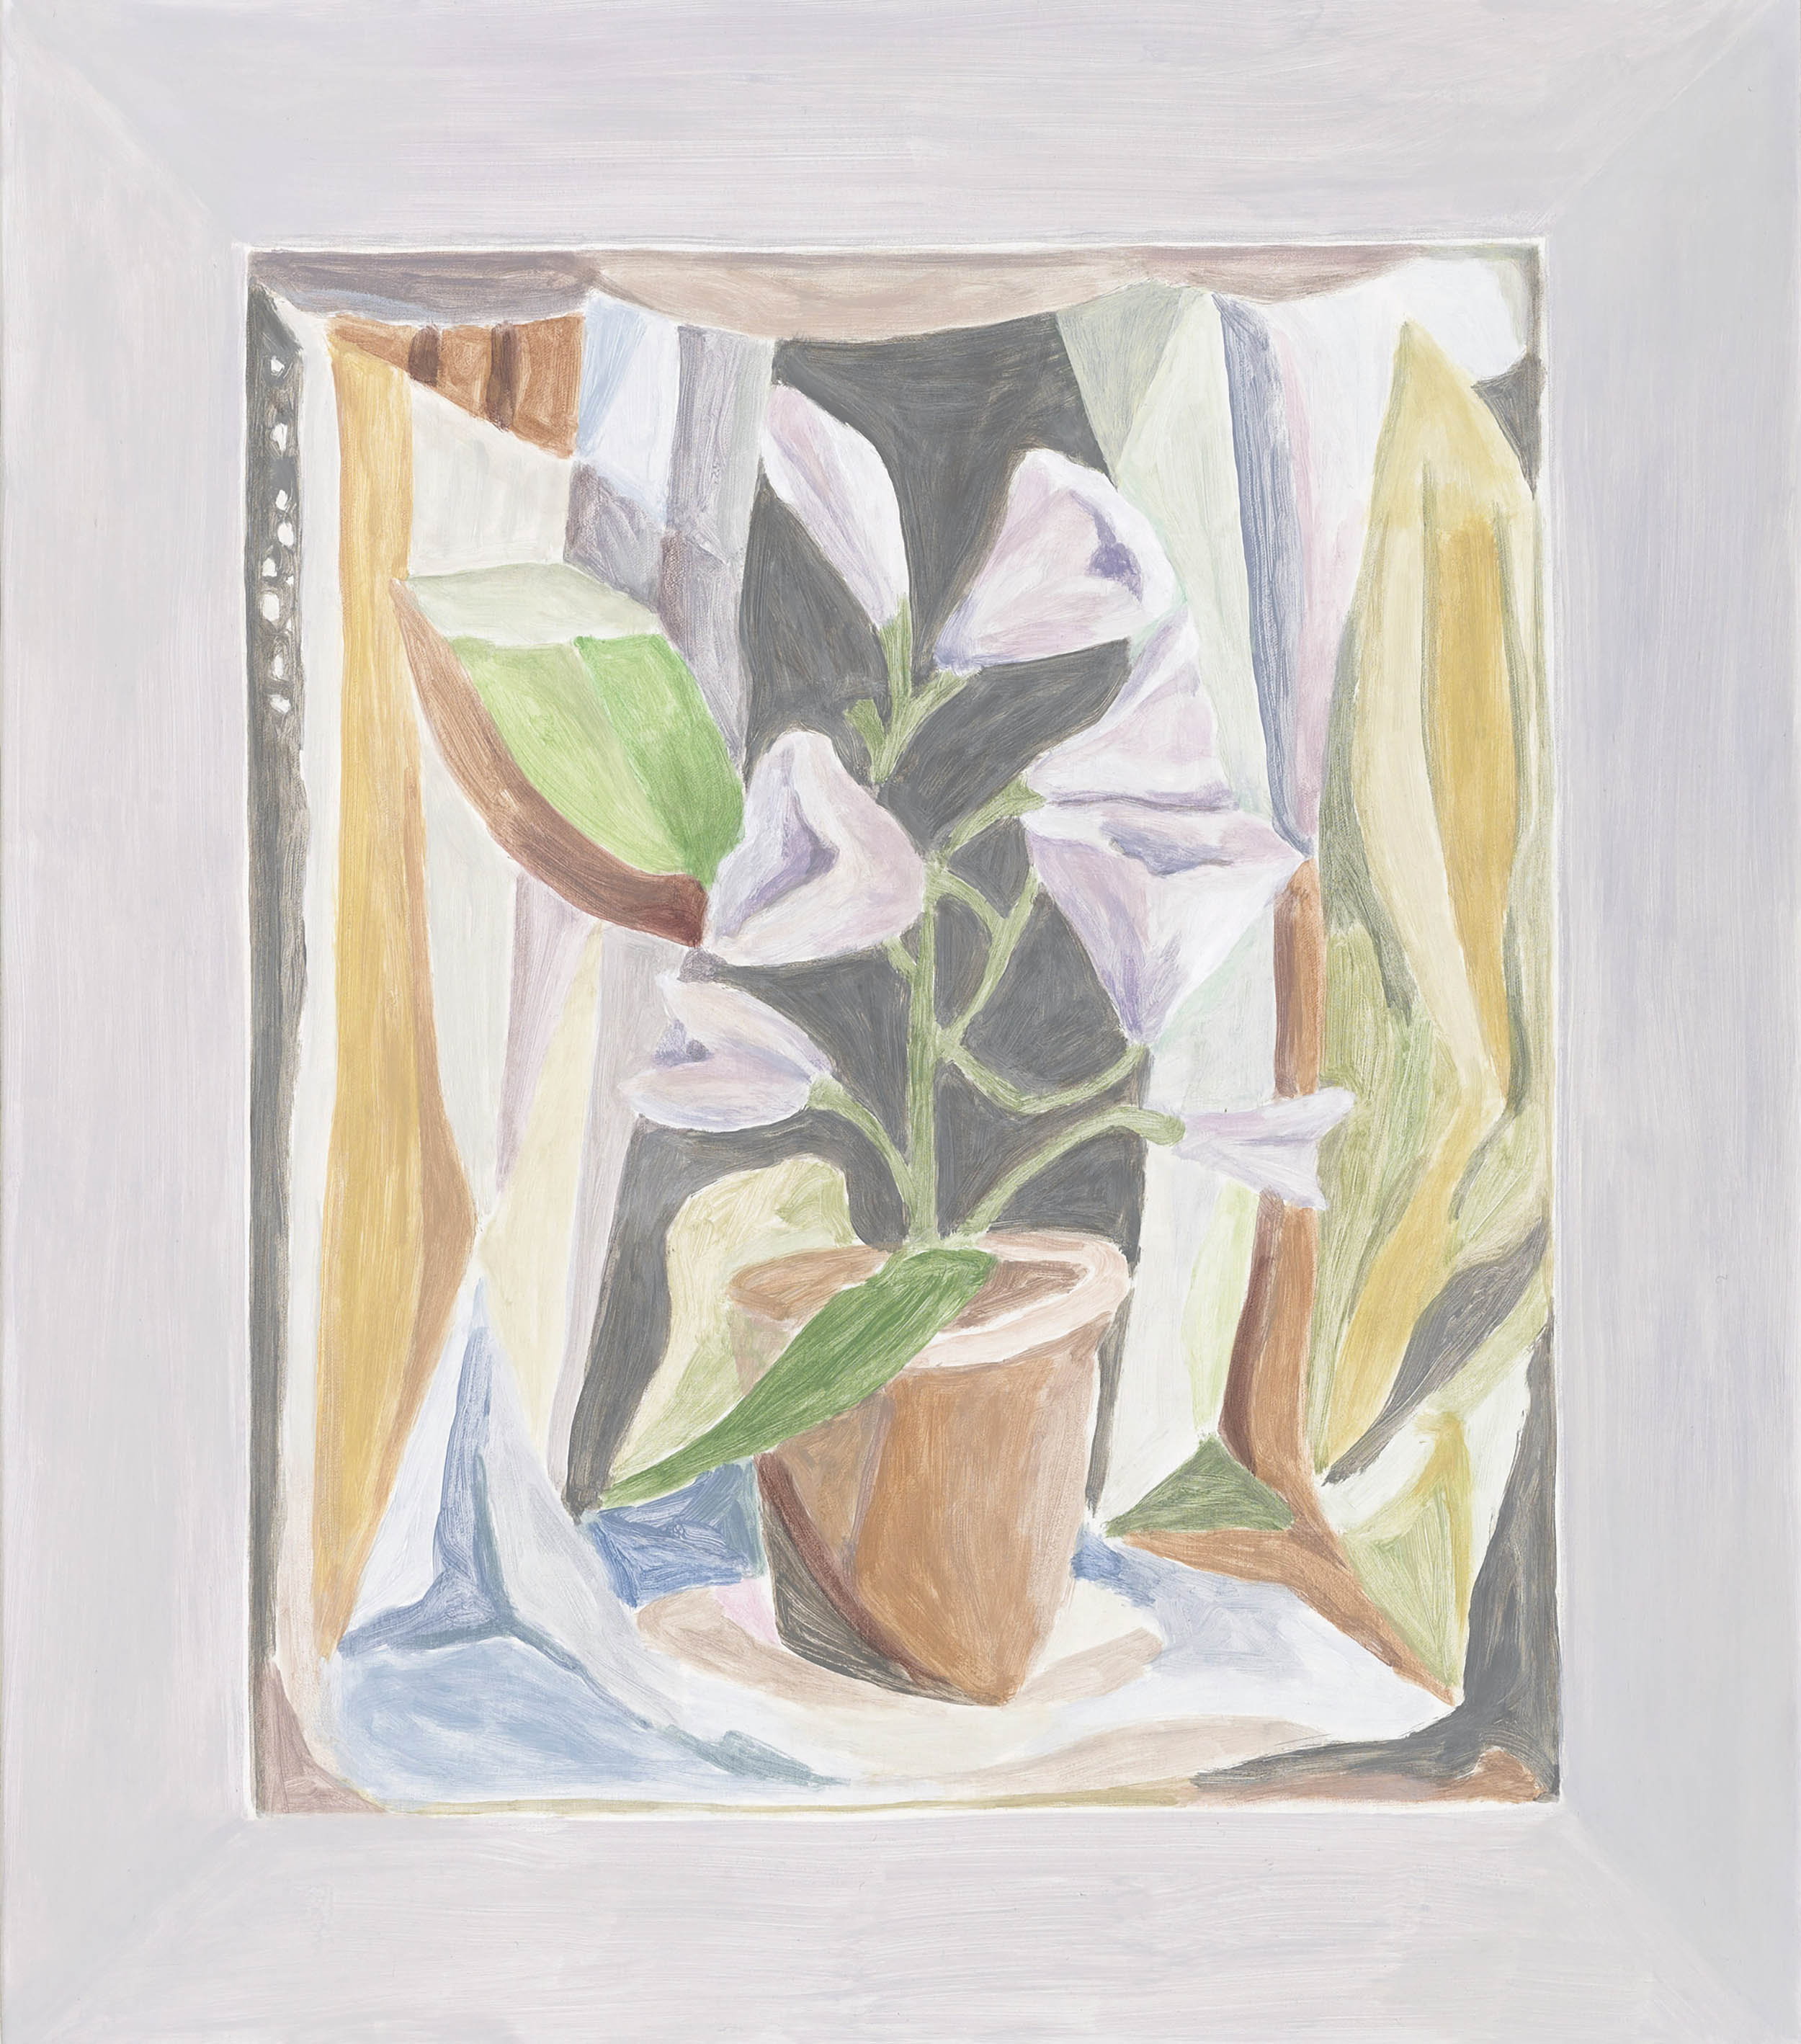 Framed Painting: Cubistic Still Life, acrylic on canvas over board, 28 1/2 x 25 inches, 2011.